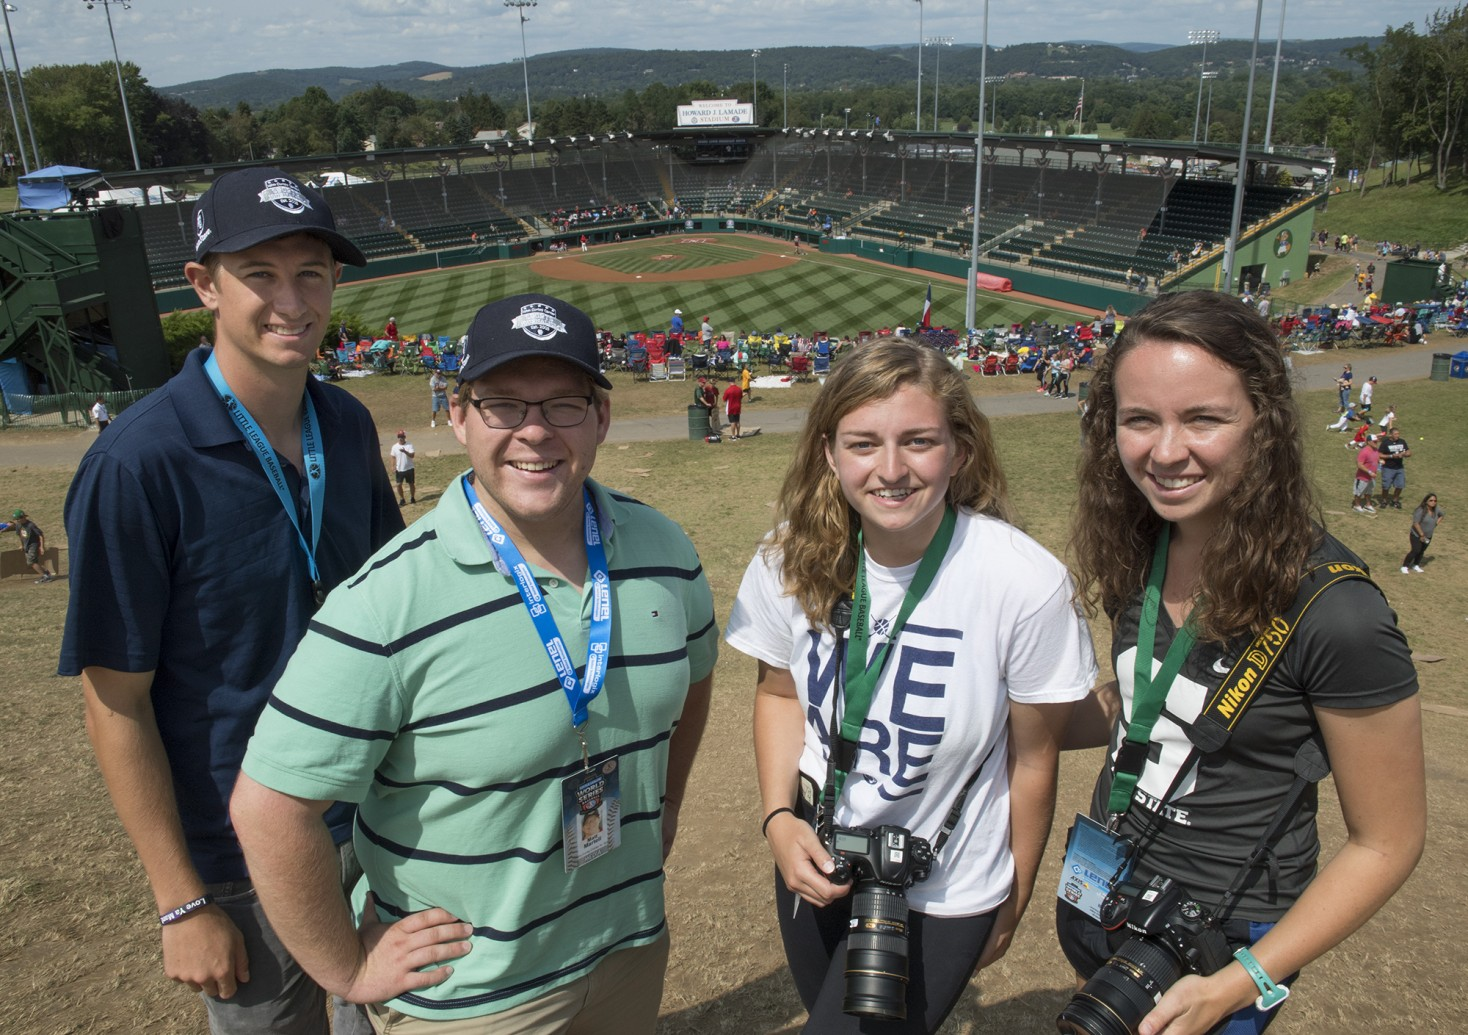 Little League World Series crew, 2017